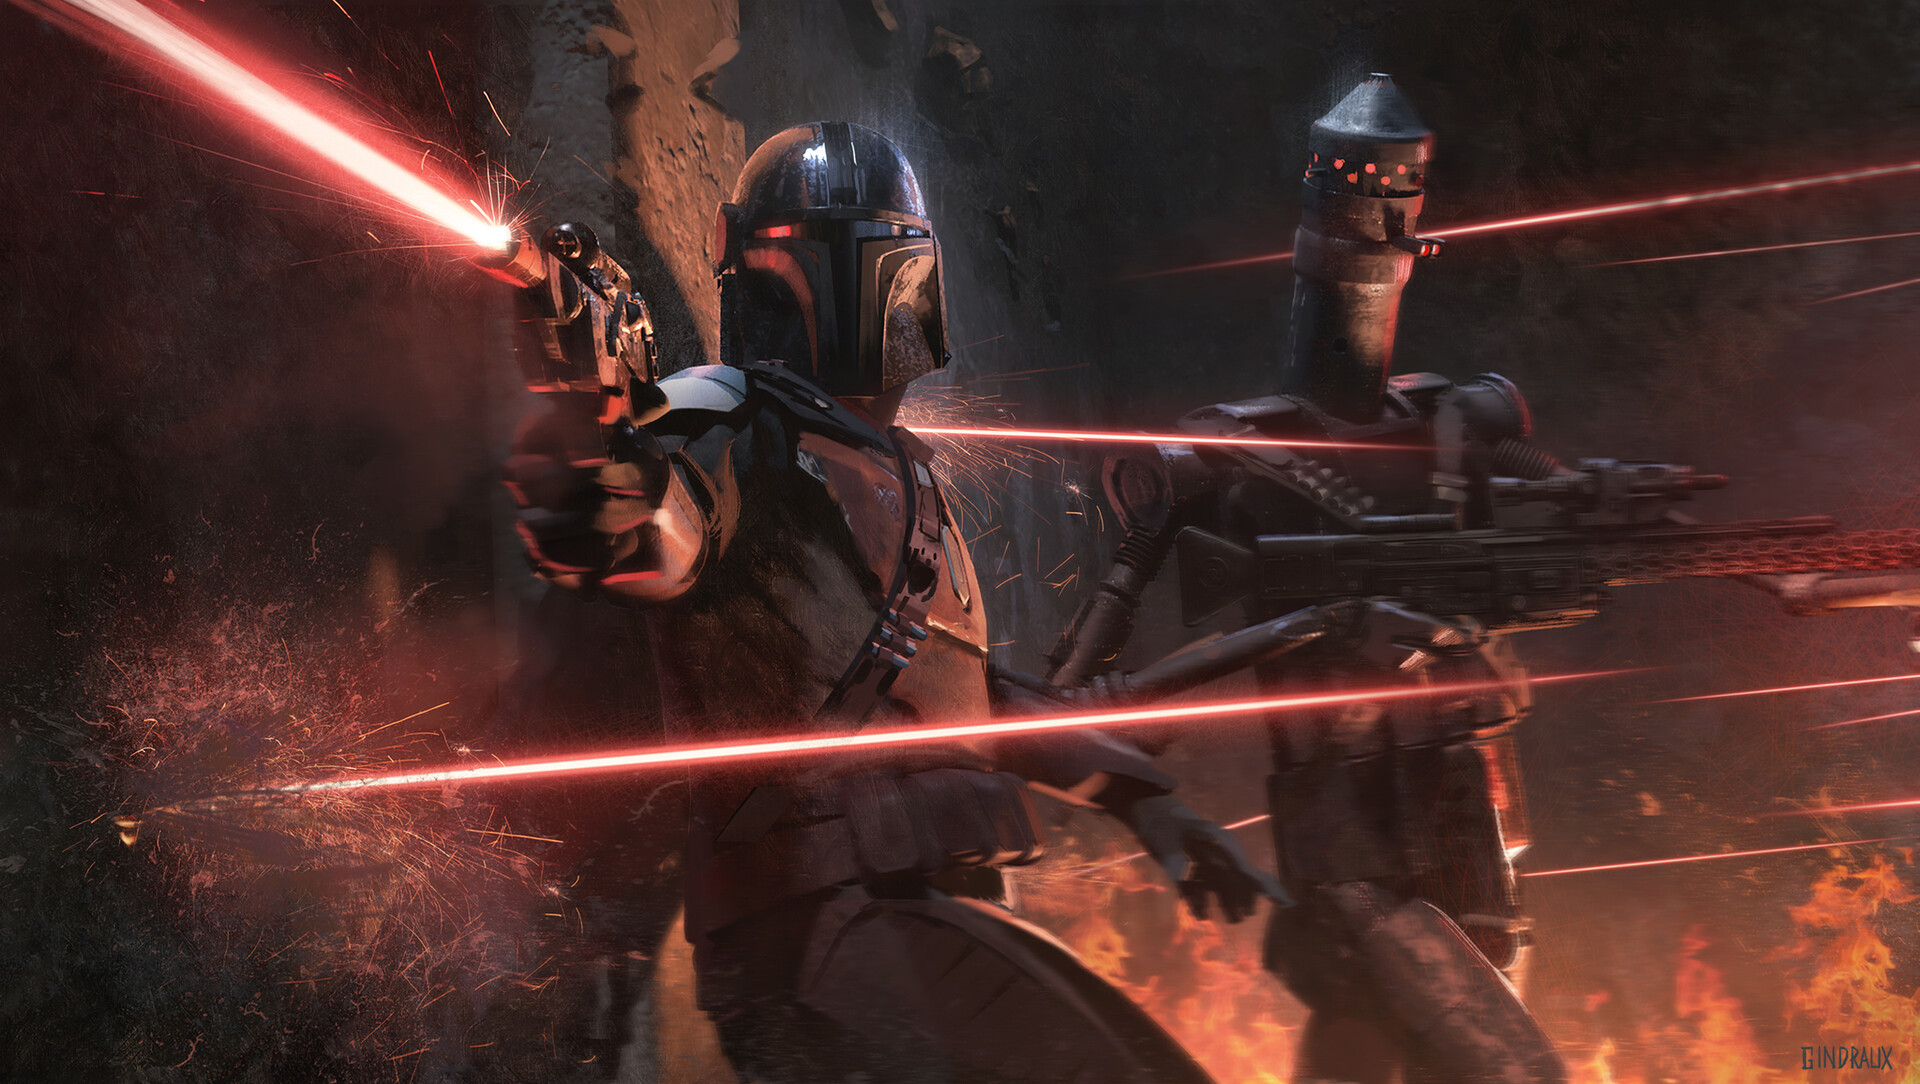 The Sci-Fi & Star Wars Artworks of Nick Gindraux